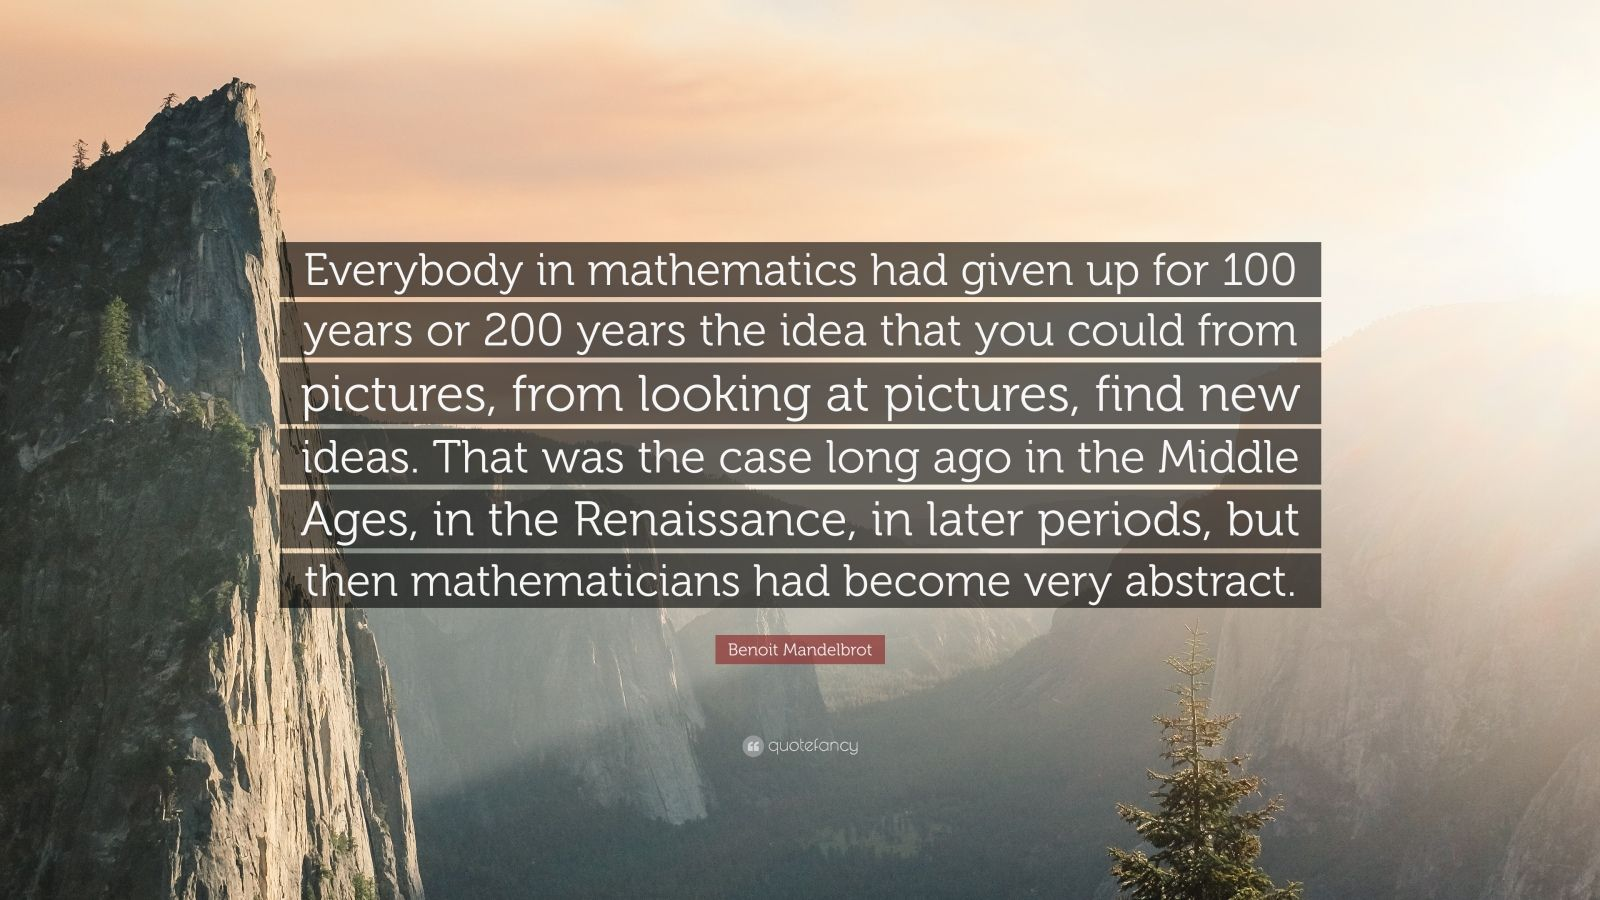 "Benoit Mandelbrot Quote: ""Everybody in mathematics had given up for 100 years or 200 years the idea that you could from pictures, from looking at pictures, find new ideas. That was the case long ago in the Middle Ages, in the Renaissance, in later periods, but then mathematicians had become very abstract."""